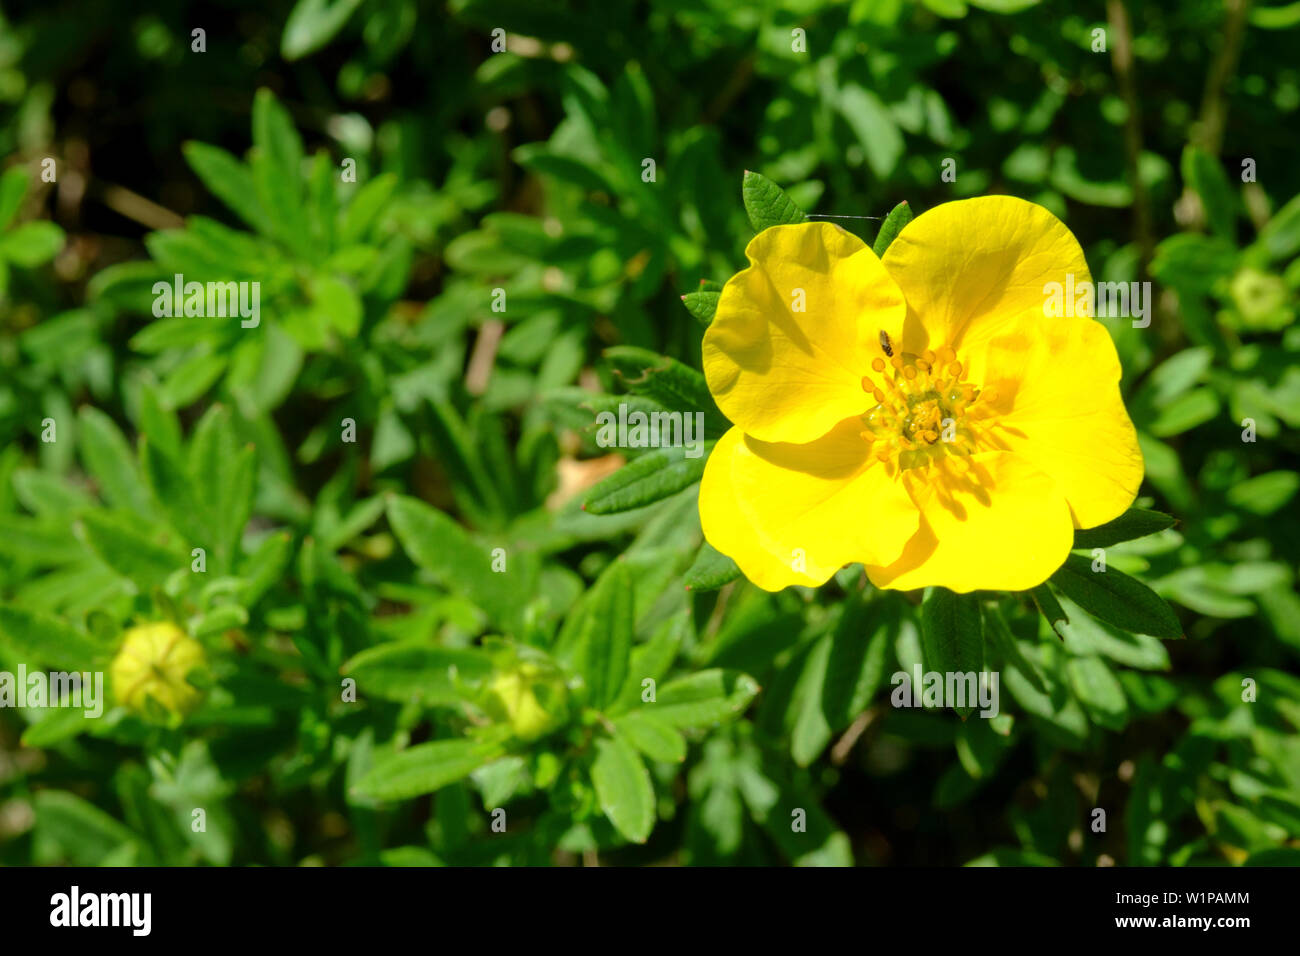 yellow flower growing on a shrub zala county hungary Stock Photo